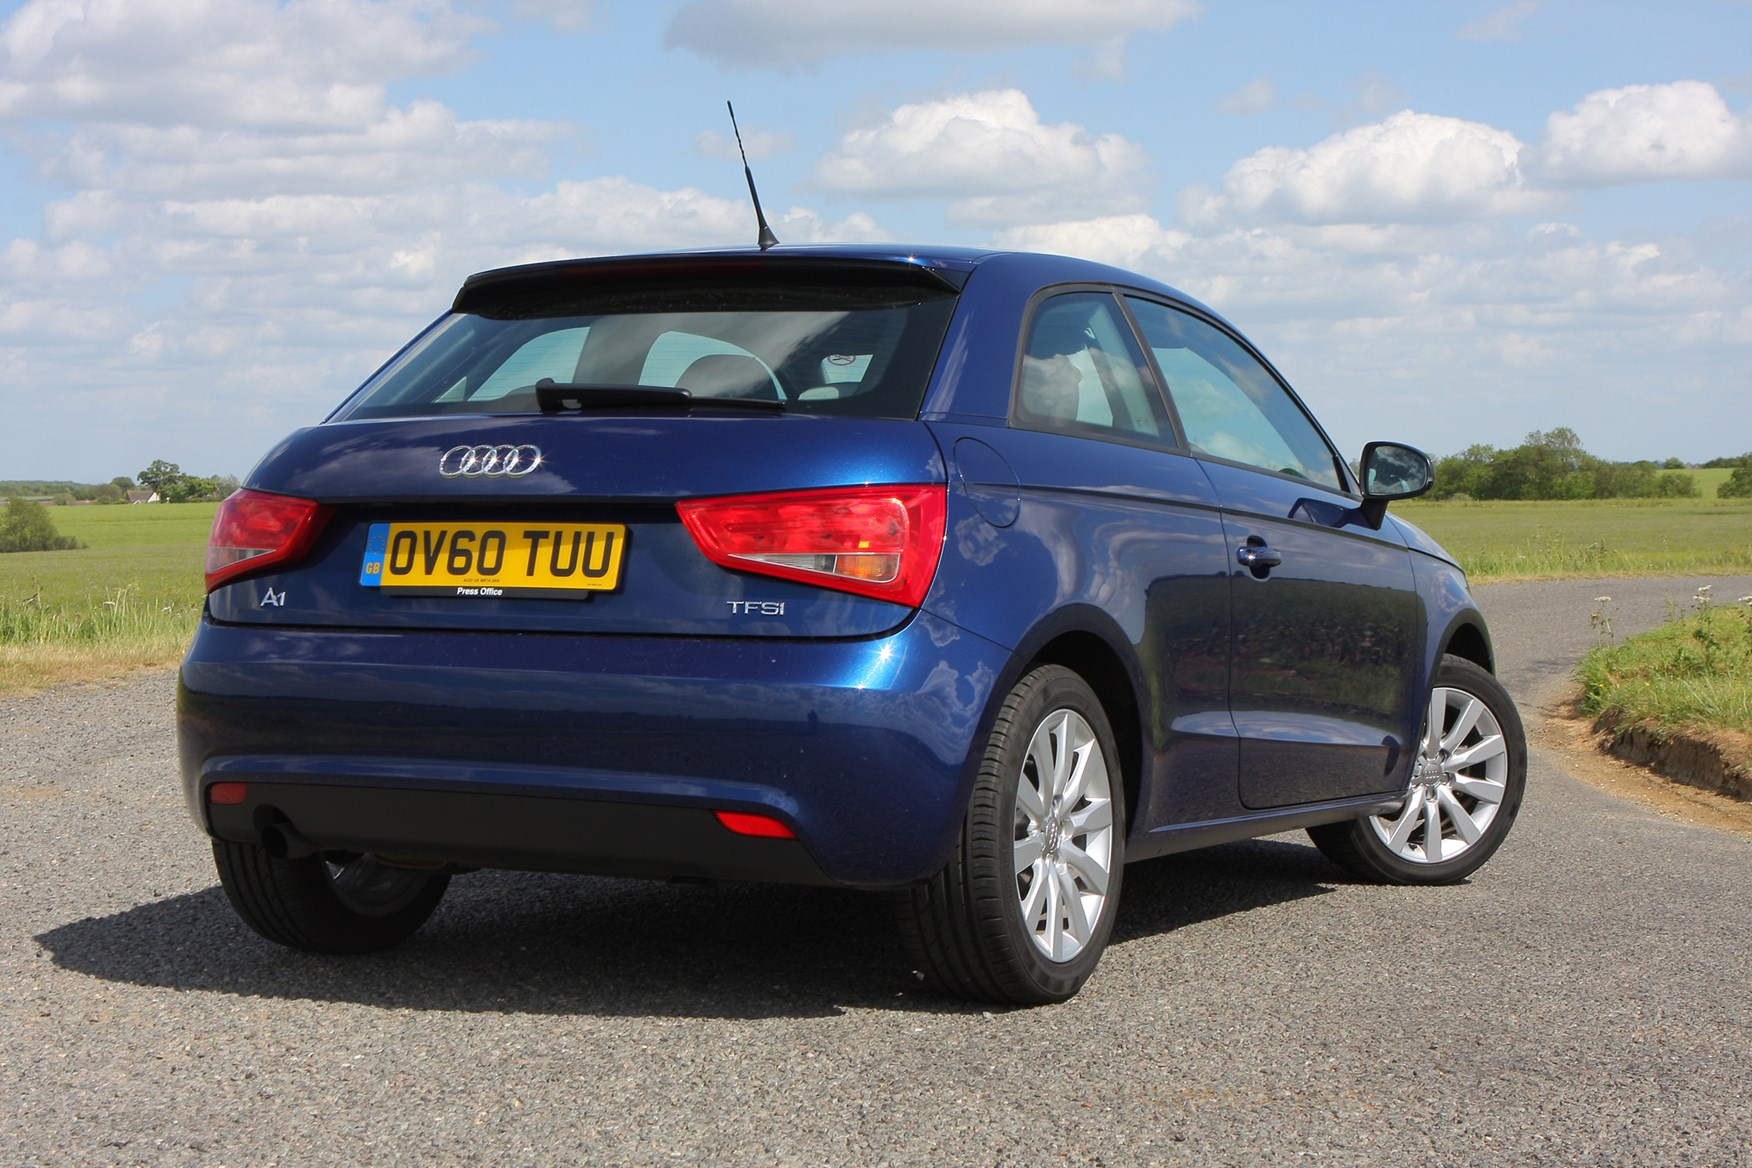 Hatchbacks For Sale >> Audi A1 Hatchback (2010 - ) Features, Equipment and Accessories | Parkers